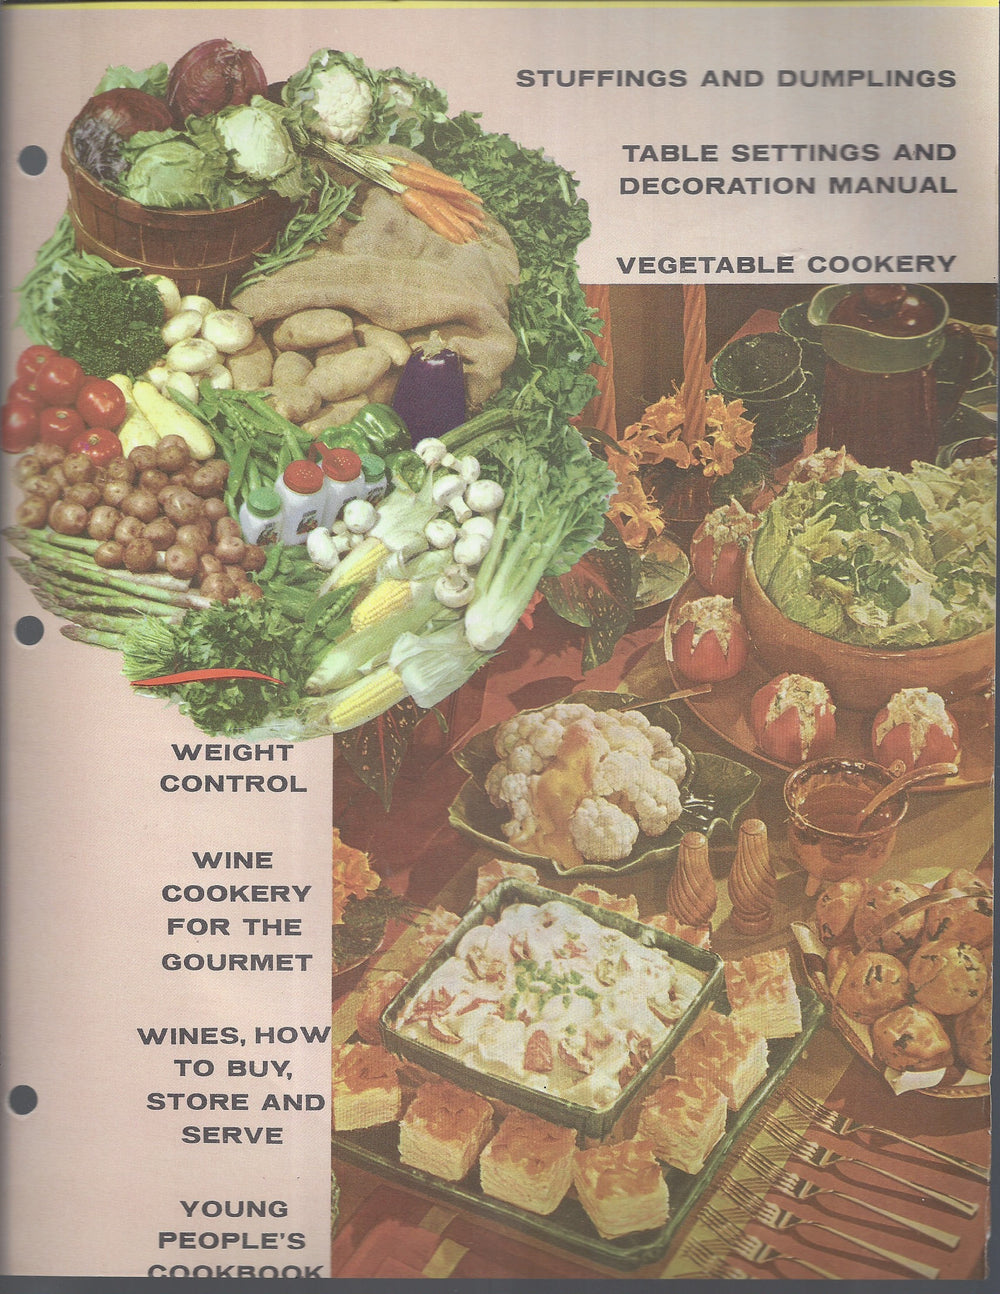 Mary Margaret McBride Encyclopedia of Cooking Cook Book Deluxe Edition 1960 (2ND EDITION) (Cover Page-Stuffing and Dumplings-Young peoples)